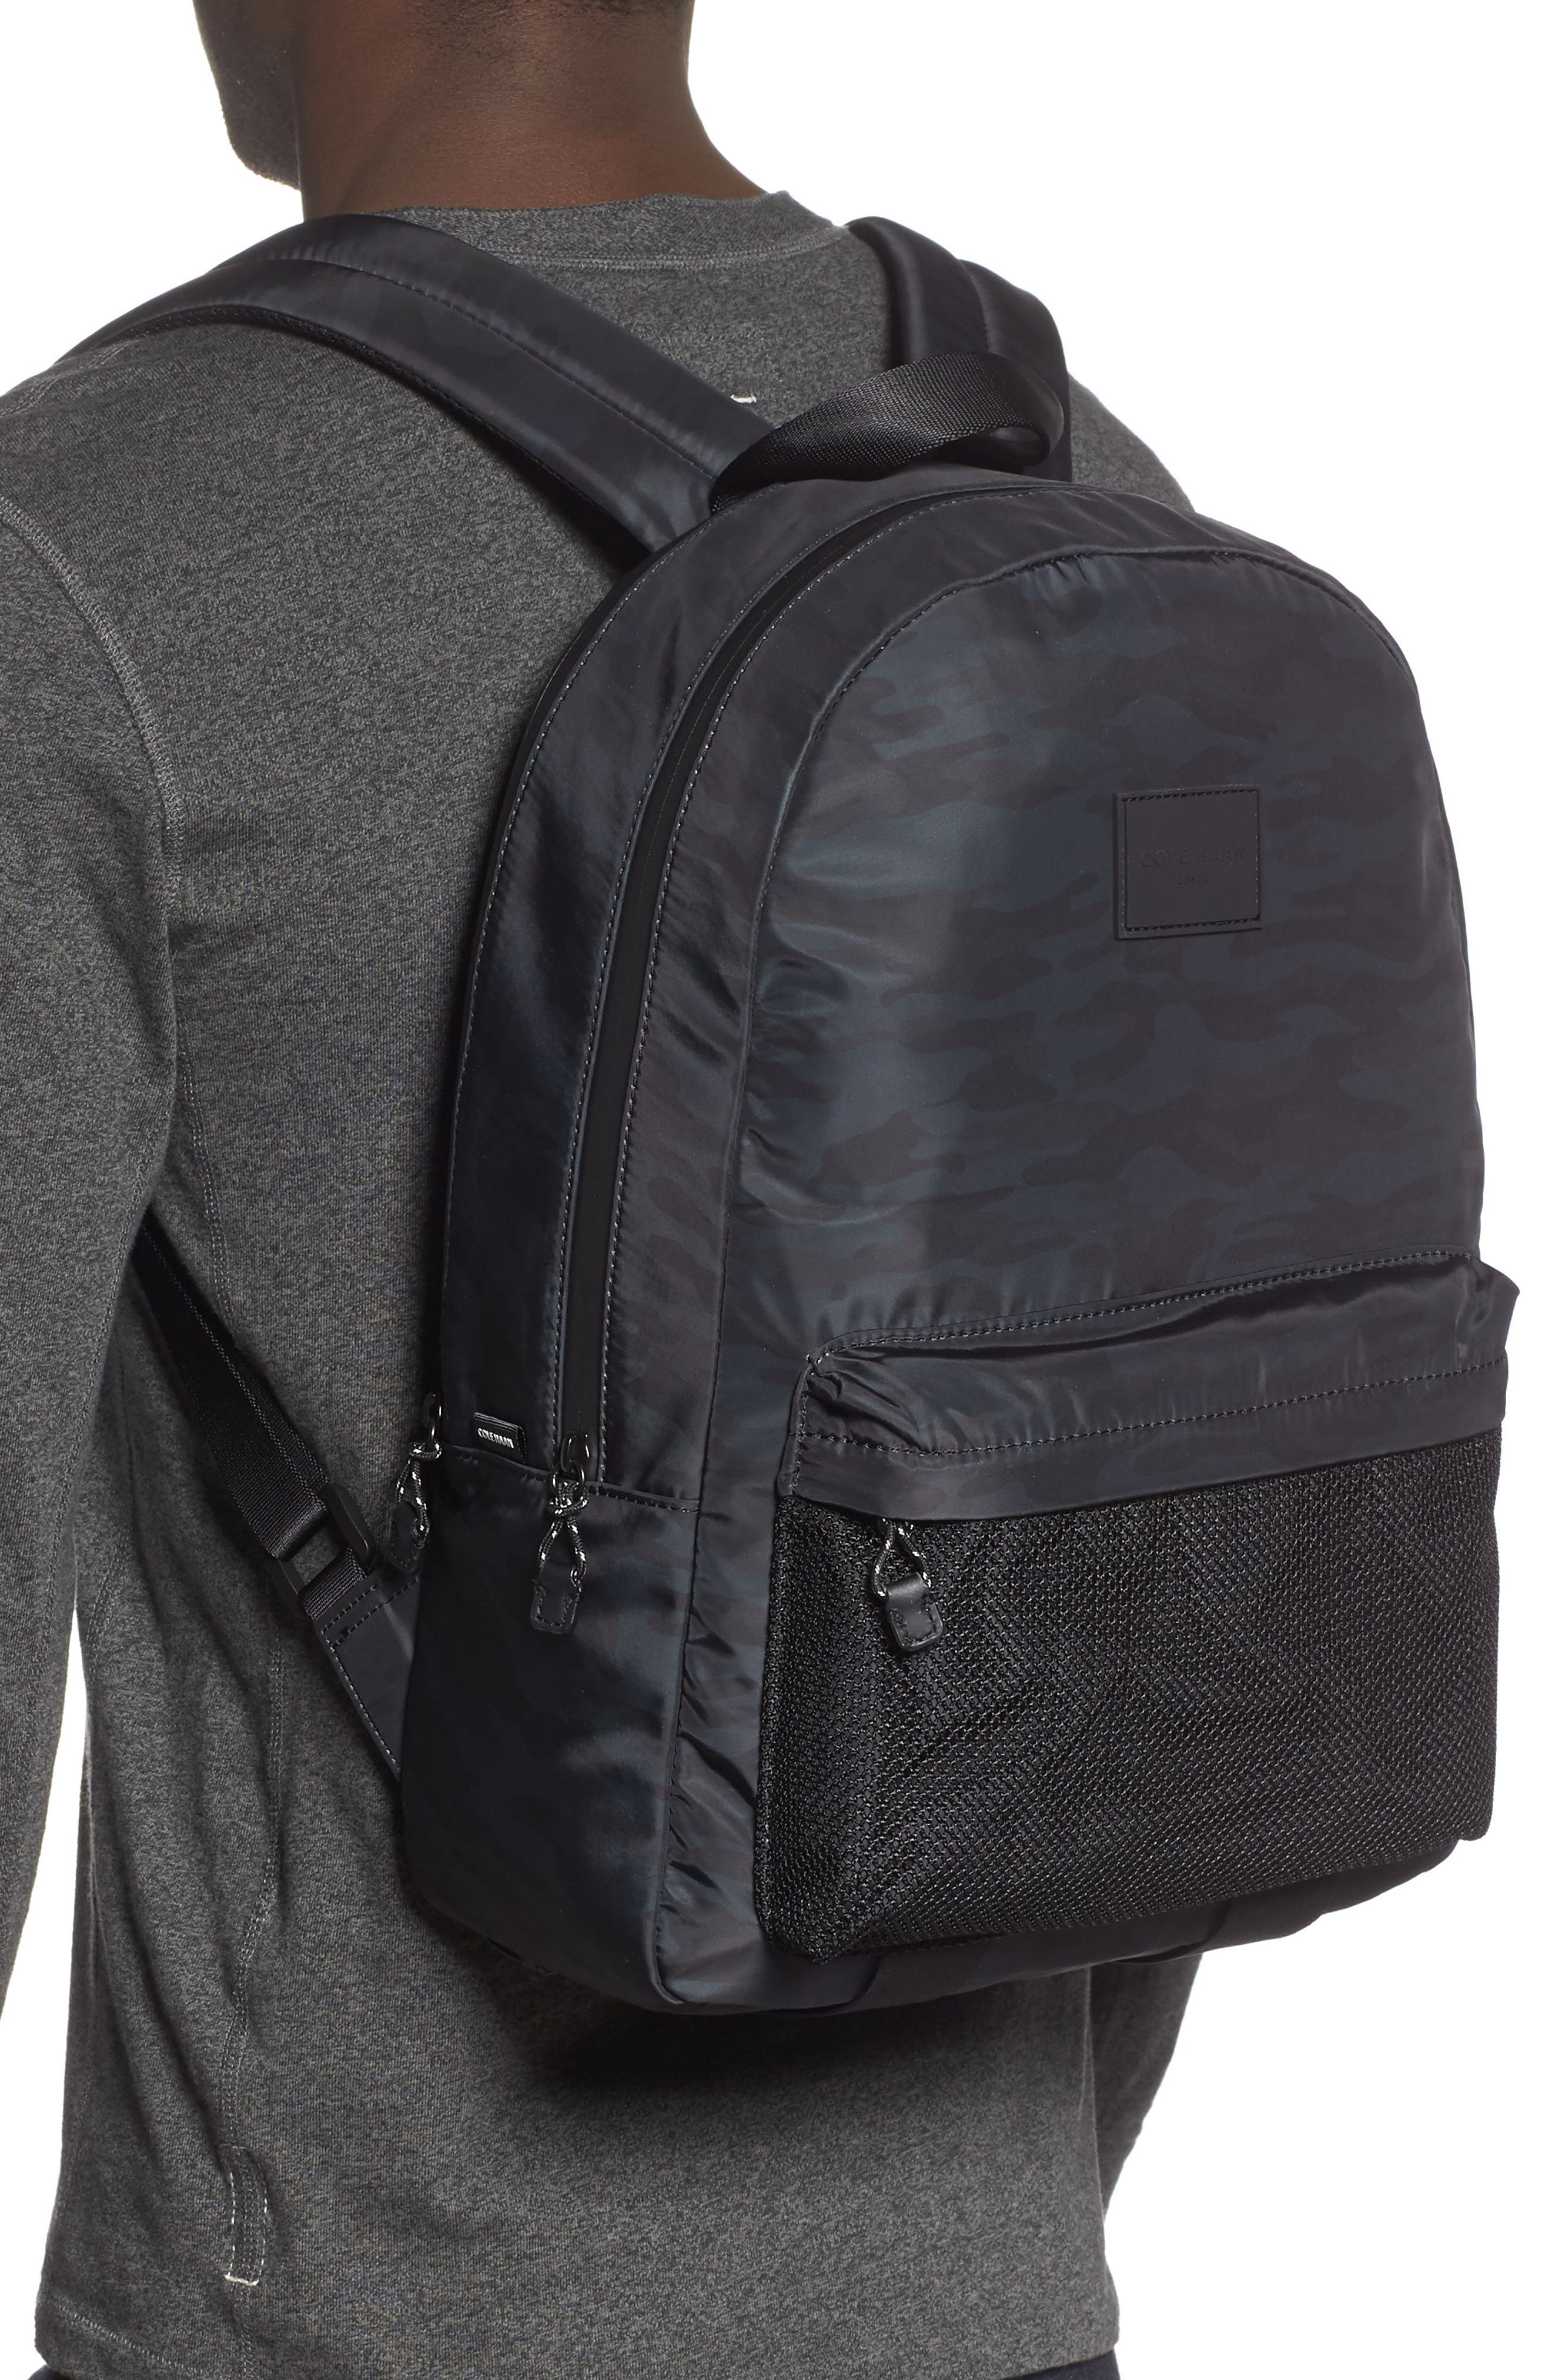 COLE HAAN, Sawyer Backpack, Alternate thumbnail 2, color, CAMO